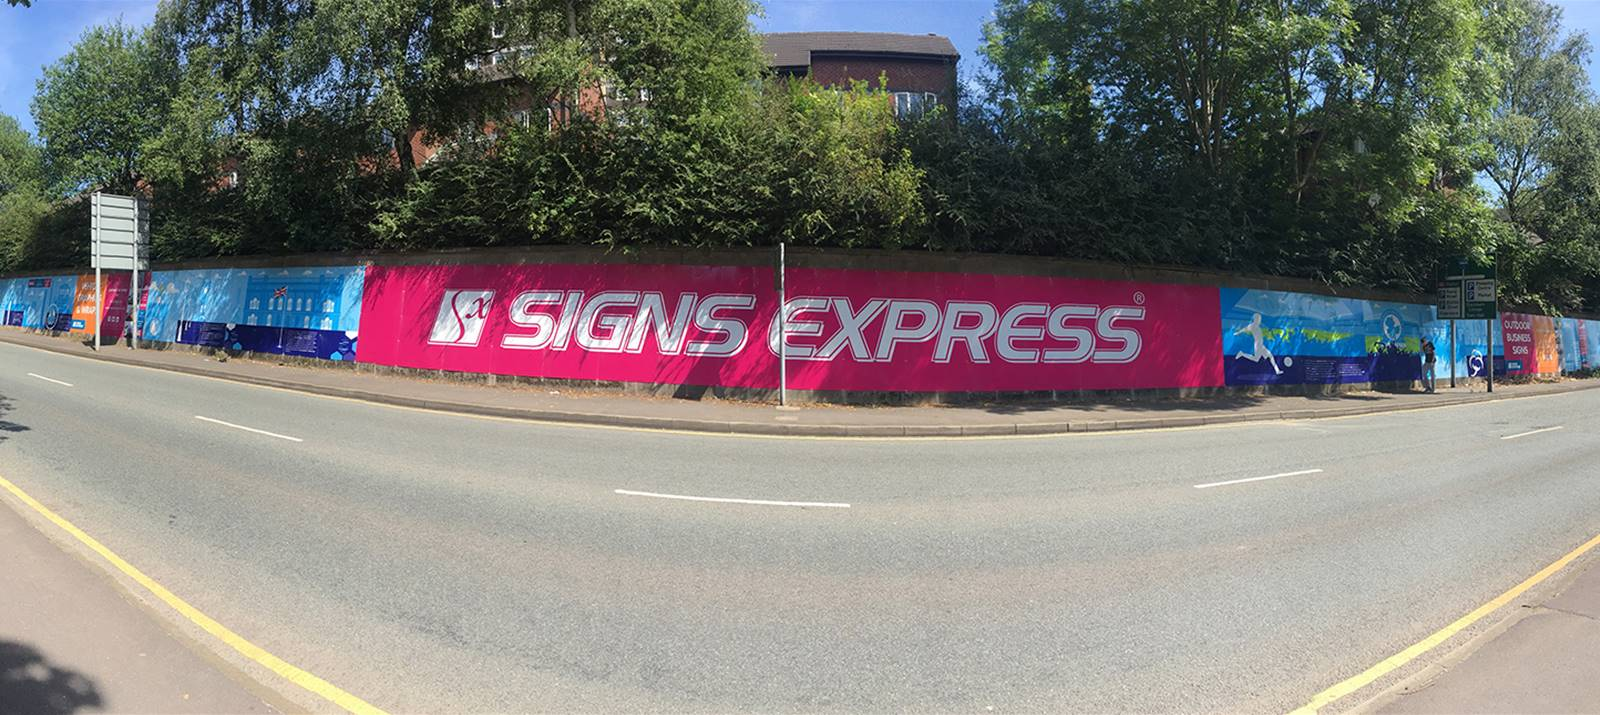 Full Colour Signage, Advertising Hoarding, Outdoor Graphics